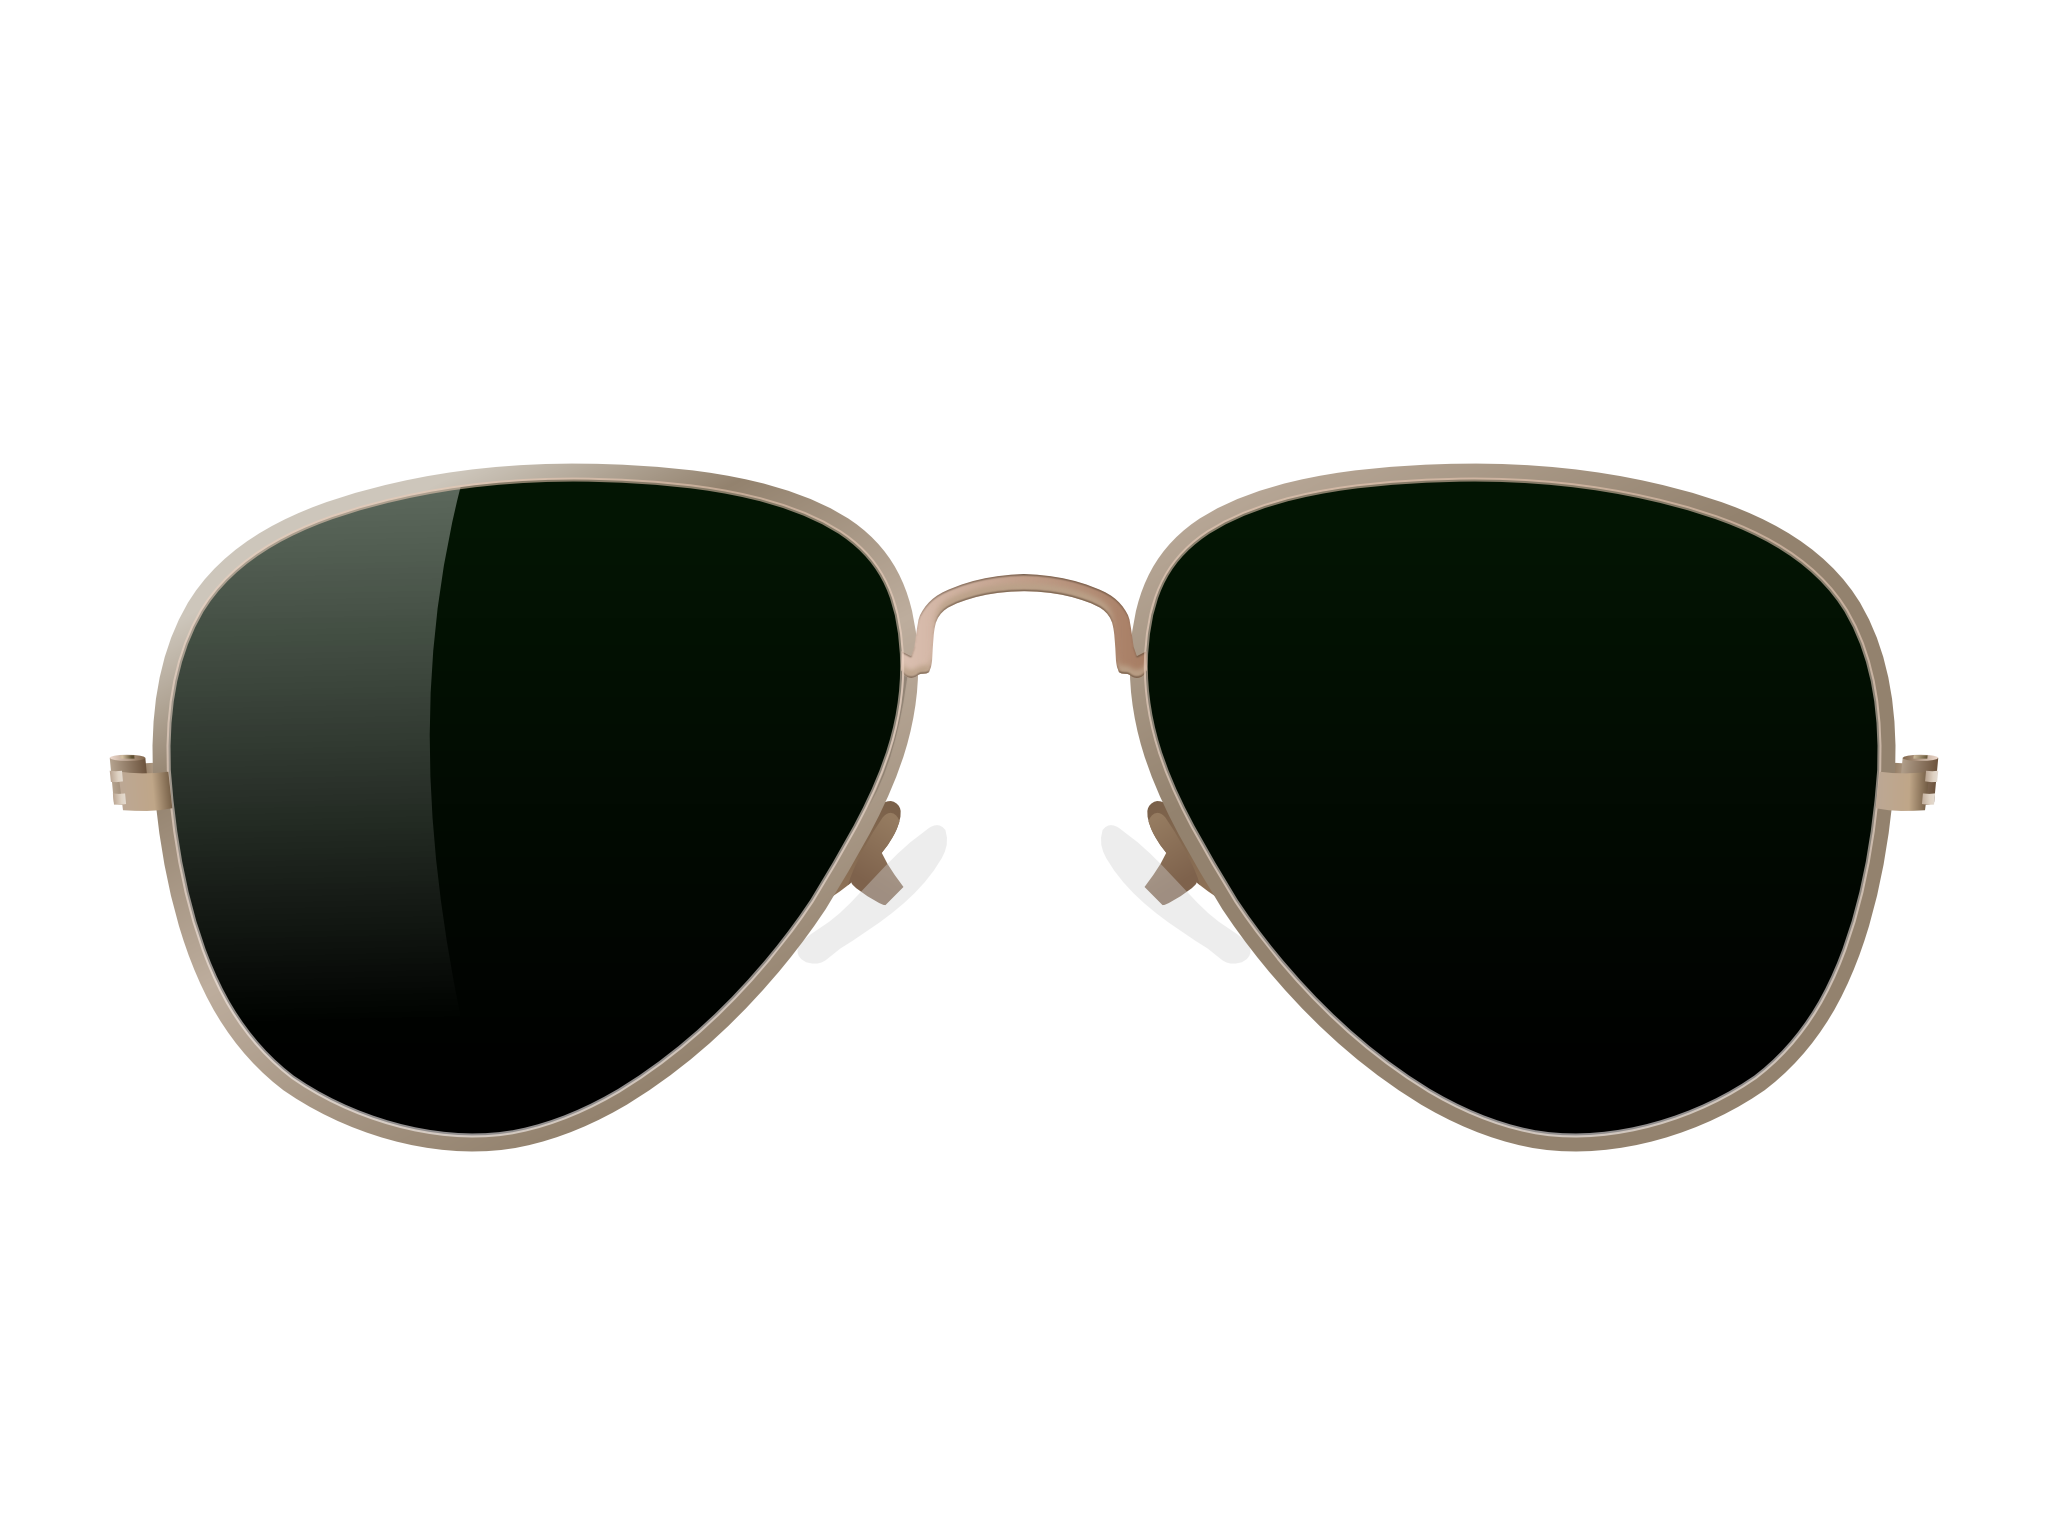 Sunglasses PNG, Sunglass Clipart Transparent.